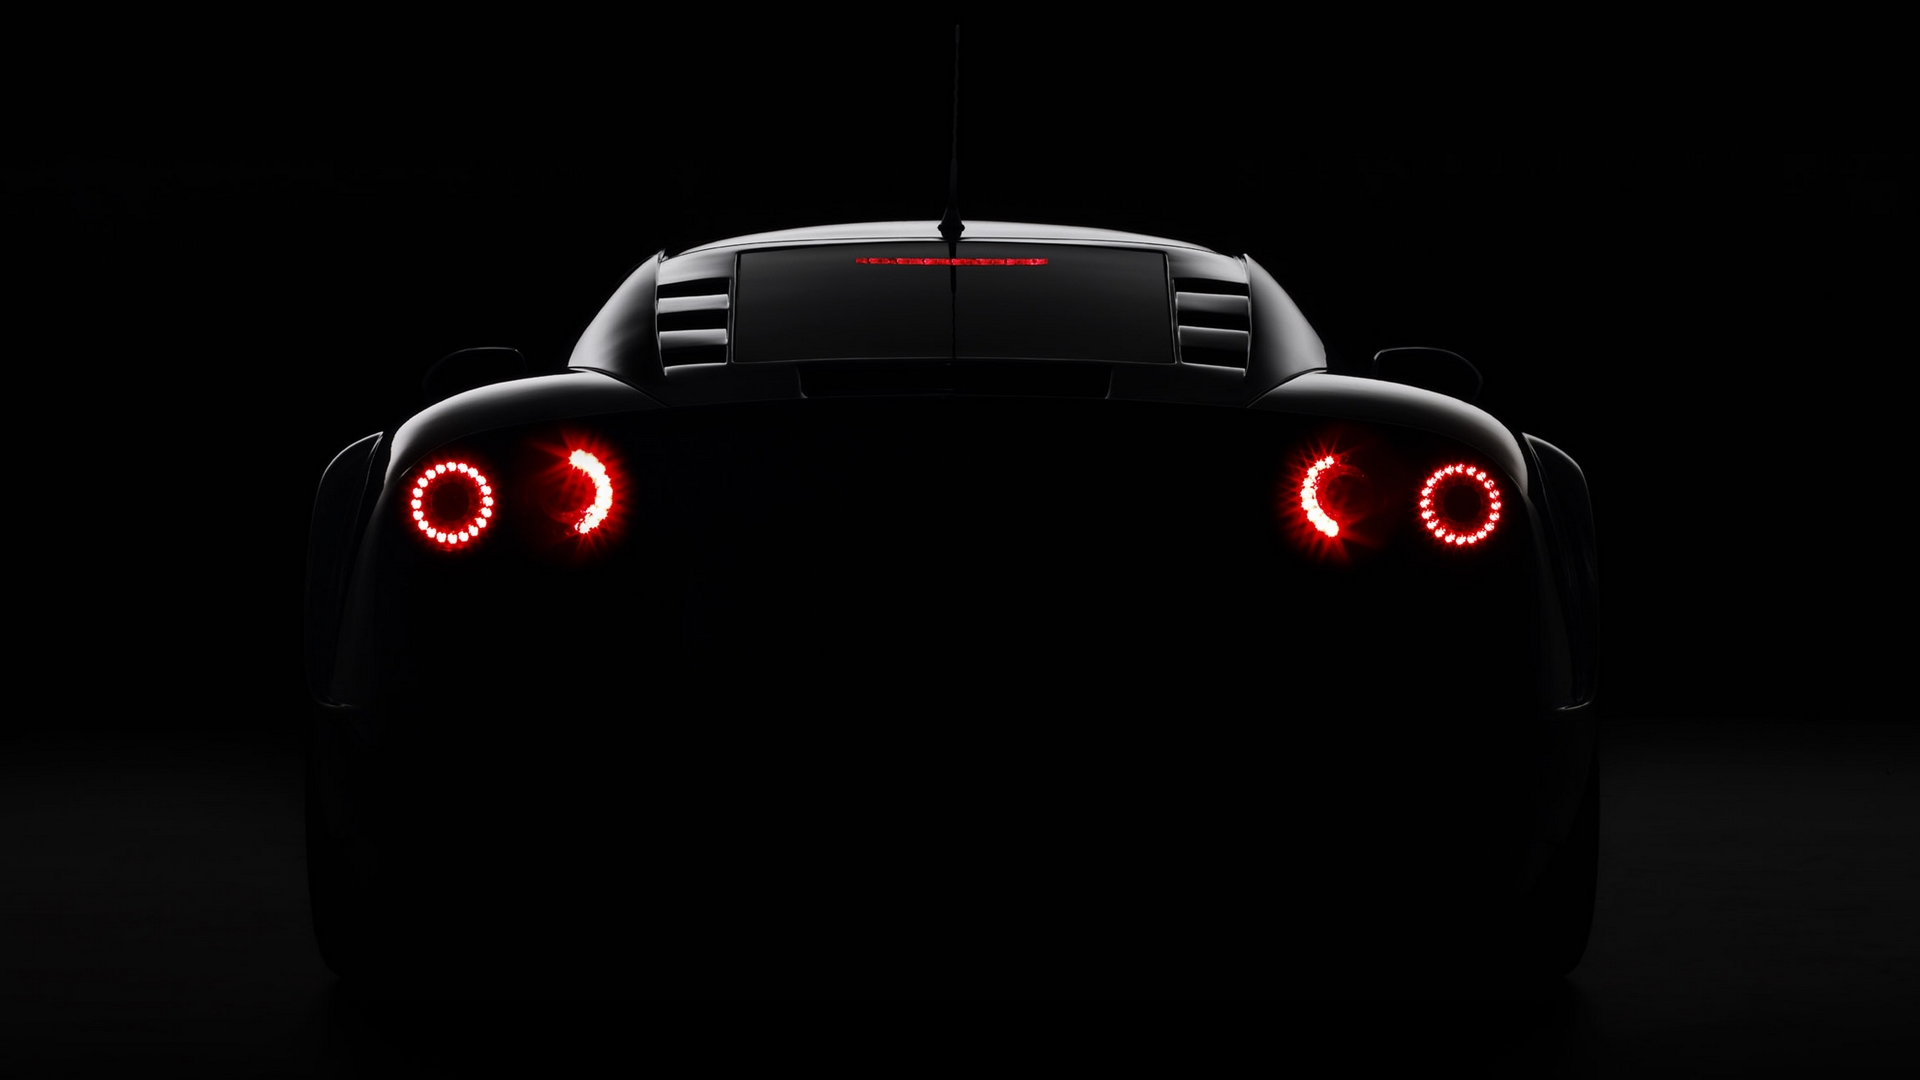 Noble M600 Full Hd Wallpaper And Background Image